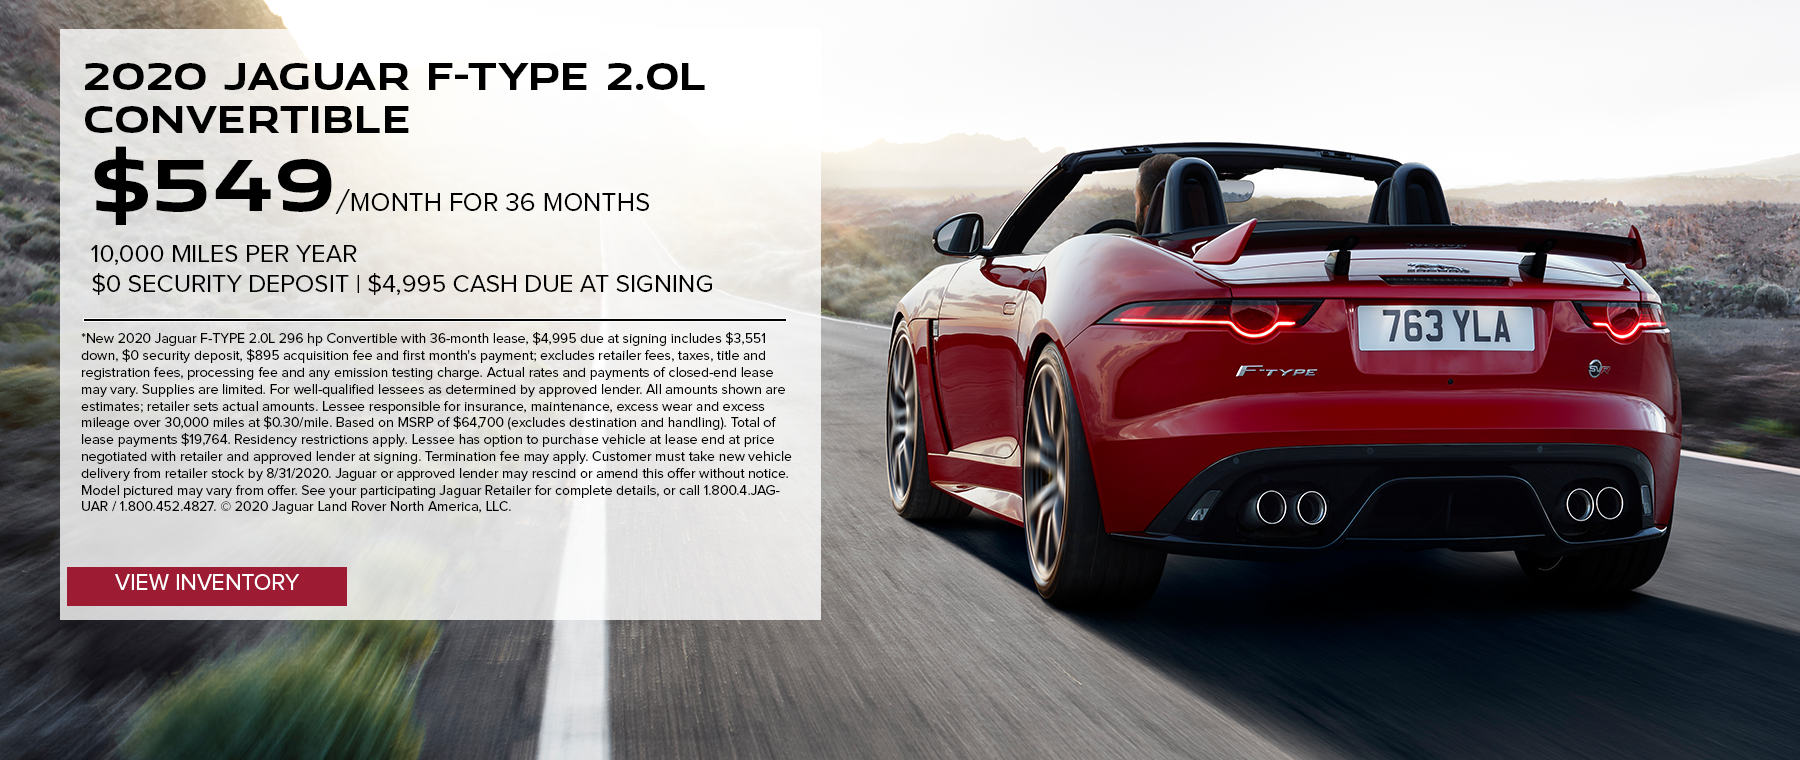 2020 JAGUAR F-TYPE 2.0L 296 HP CONVERTIBLE. $549 PER MONTH. 36 MONTH LEASE TERM. $4,995 CASH DUE AT SIGNING. $0 SECURITY DEPOSIT. 10,000 MILES PER YEAR. EXCLUDES RETAILER FEES, TAXES, TITLE AND REGISTRATION FEES, PROCESSING FEE AND ANY EMISSION TESTING CHARGE. OFFER ENDS 8/31/2020.